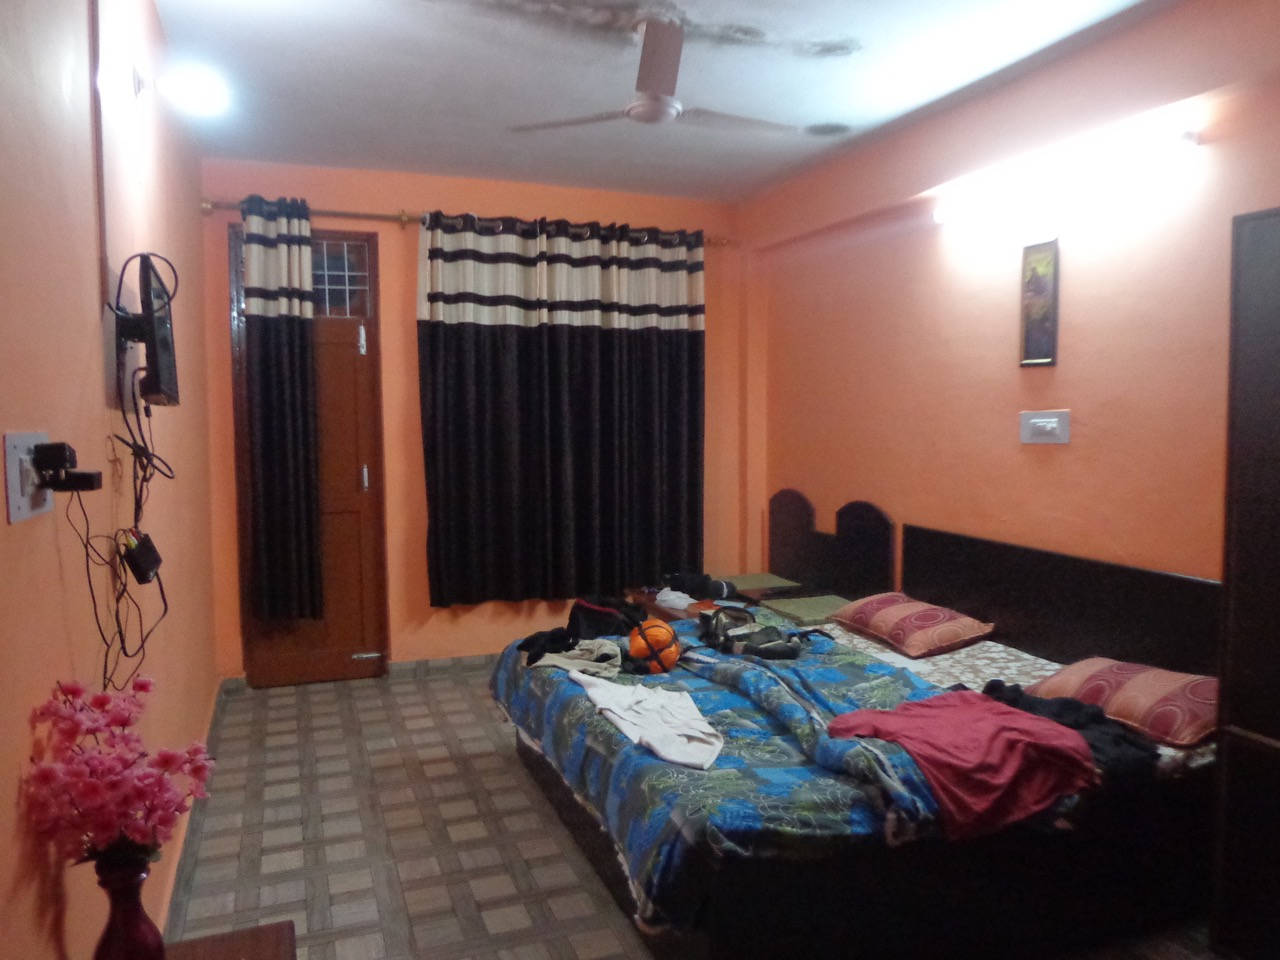 My room in Backpackers Inn. It has a balcony, too.